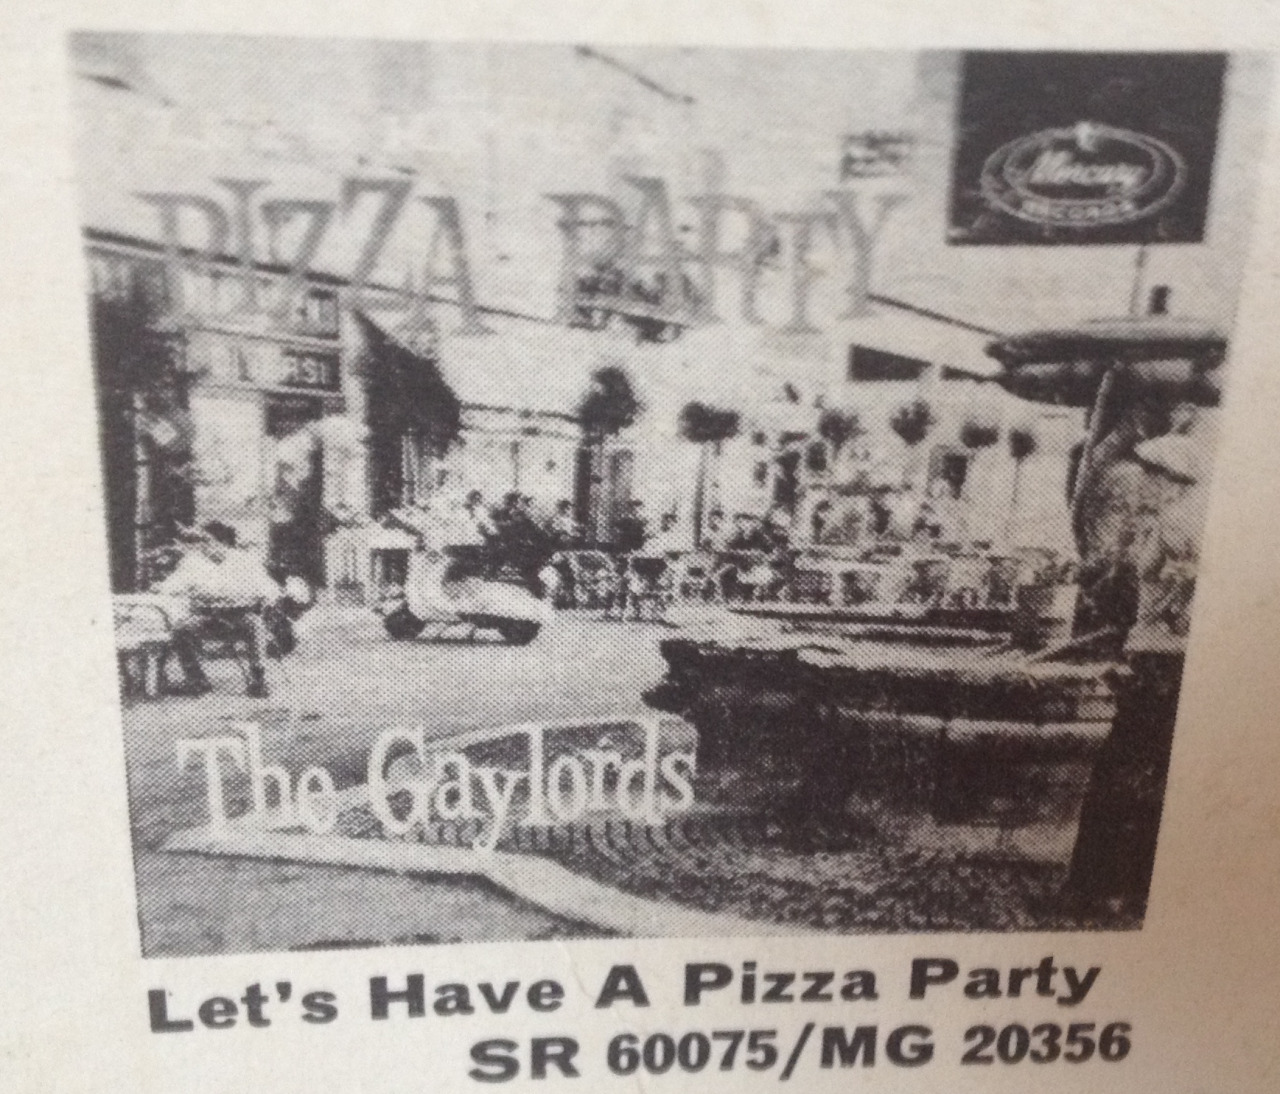 Let's have a pizza party.